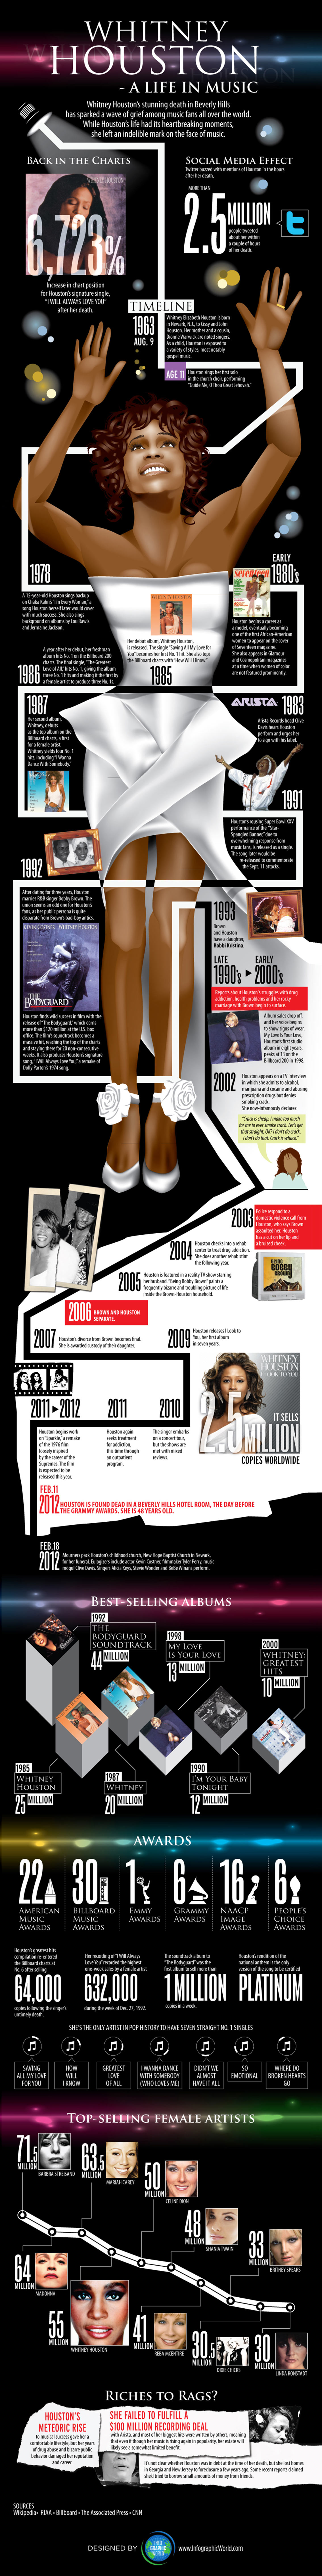 Whitney Houston - A Life in Music Infographic